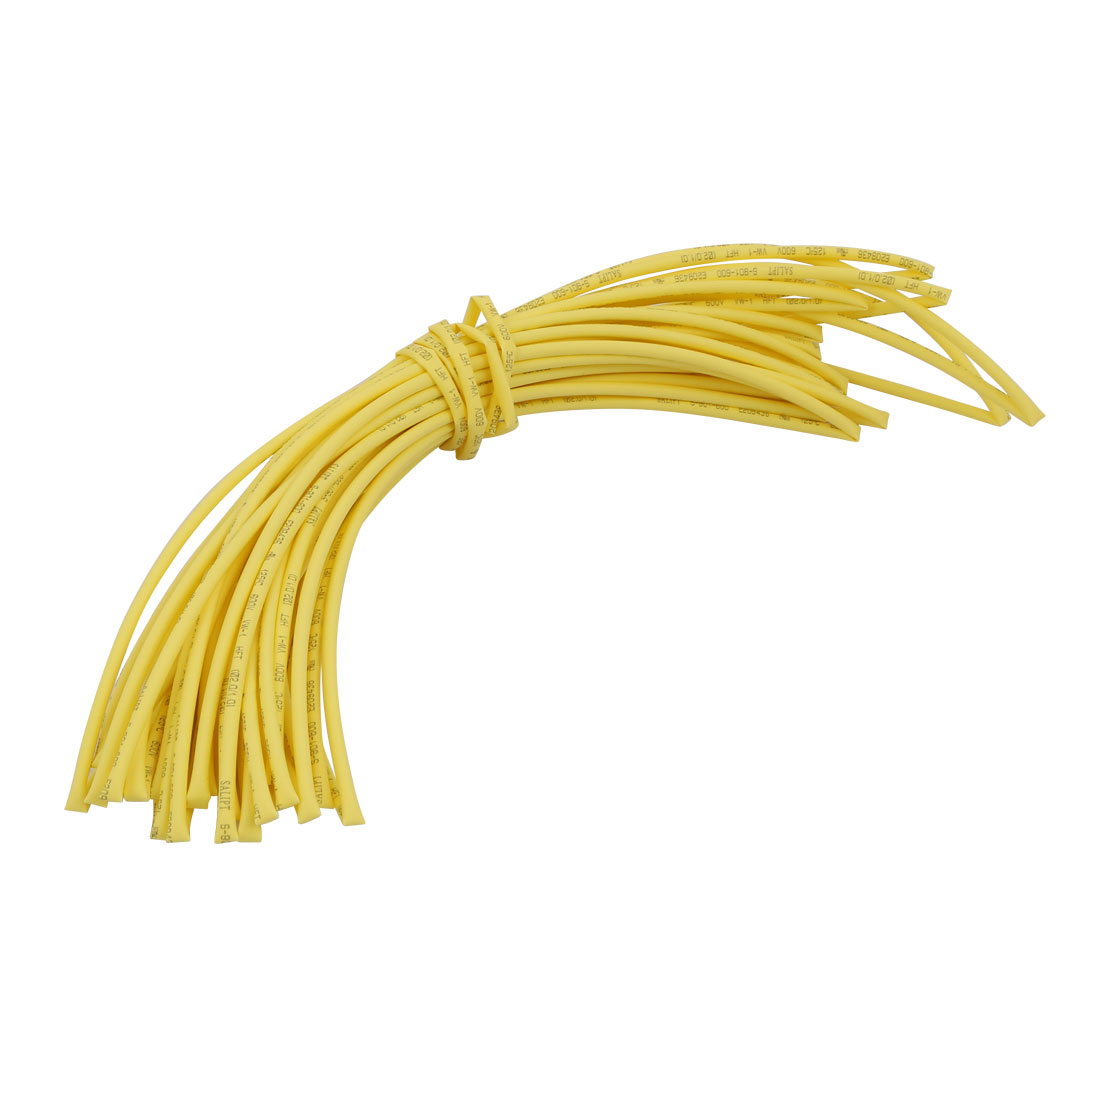 10M x 0.08in Inner Dia Polyolefin Flame Retardant Tube Yellow for Wire Repairing